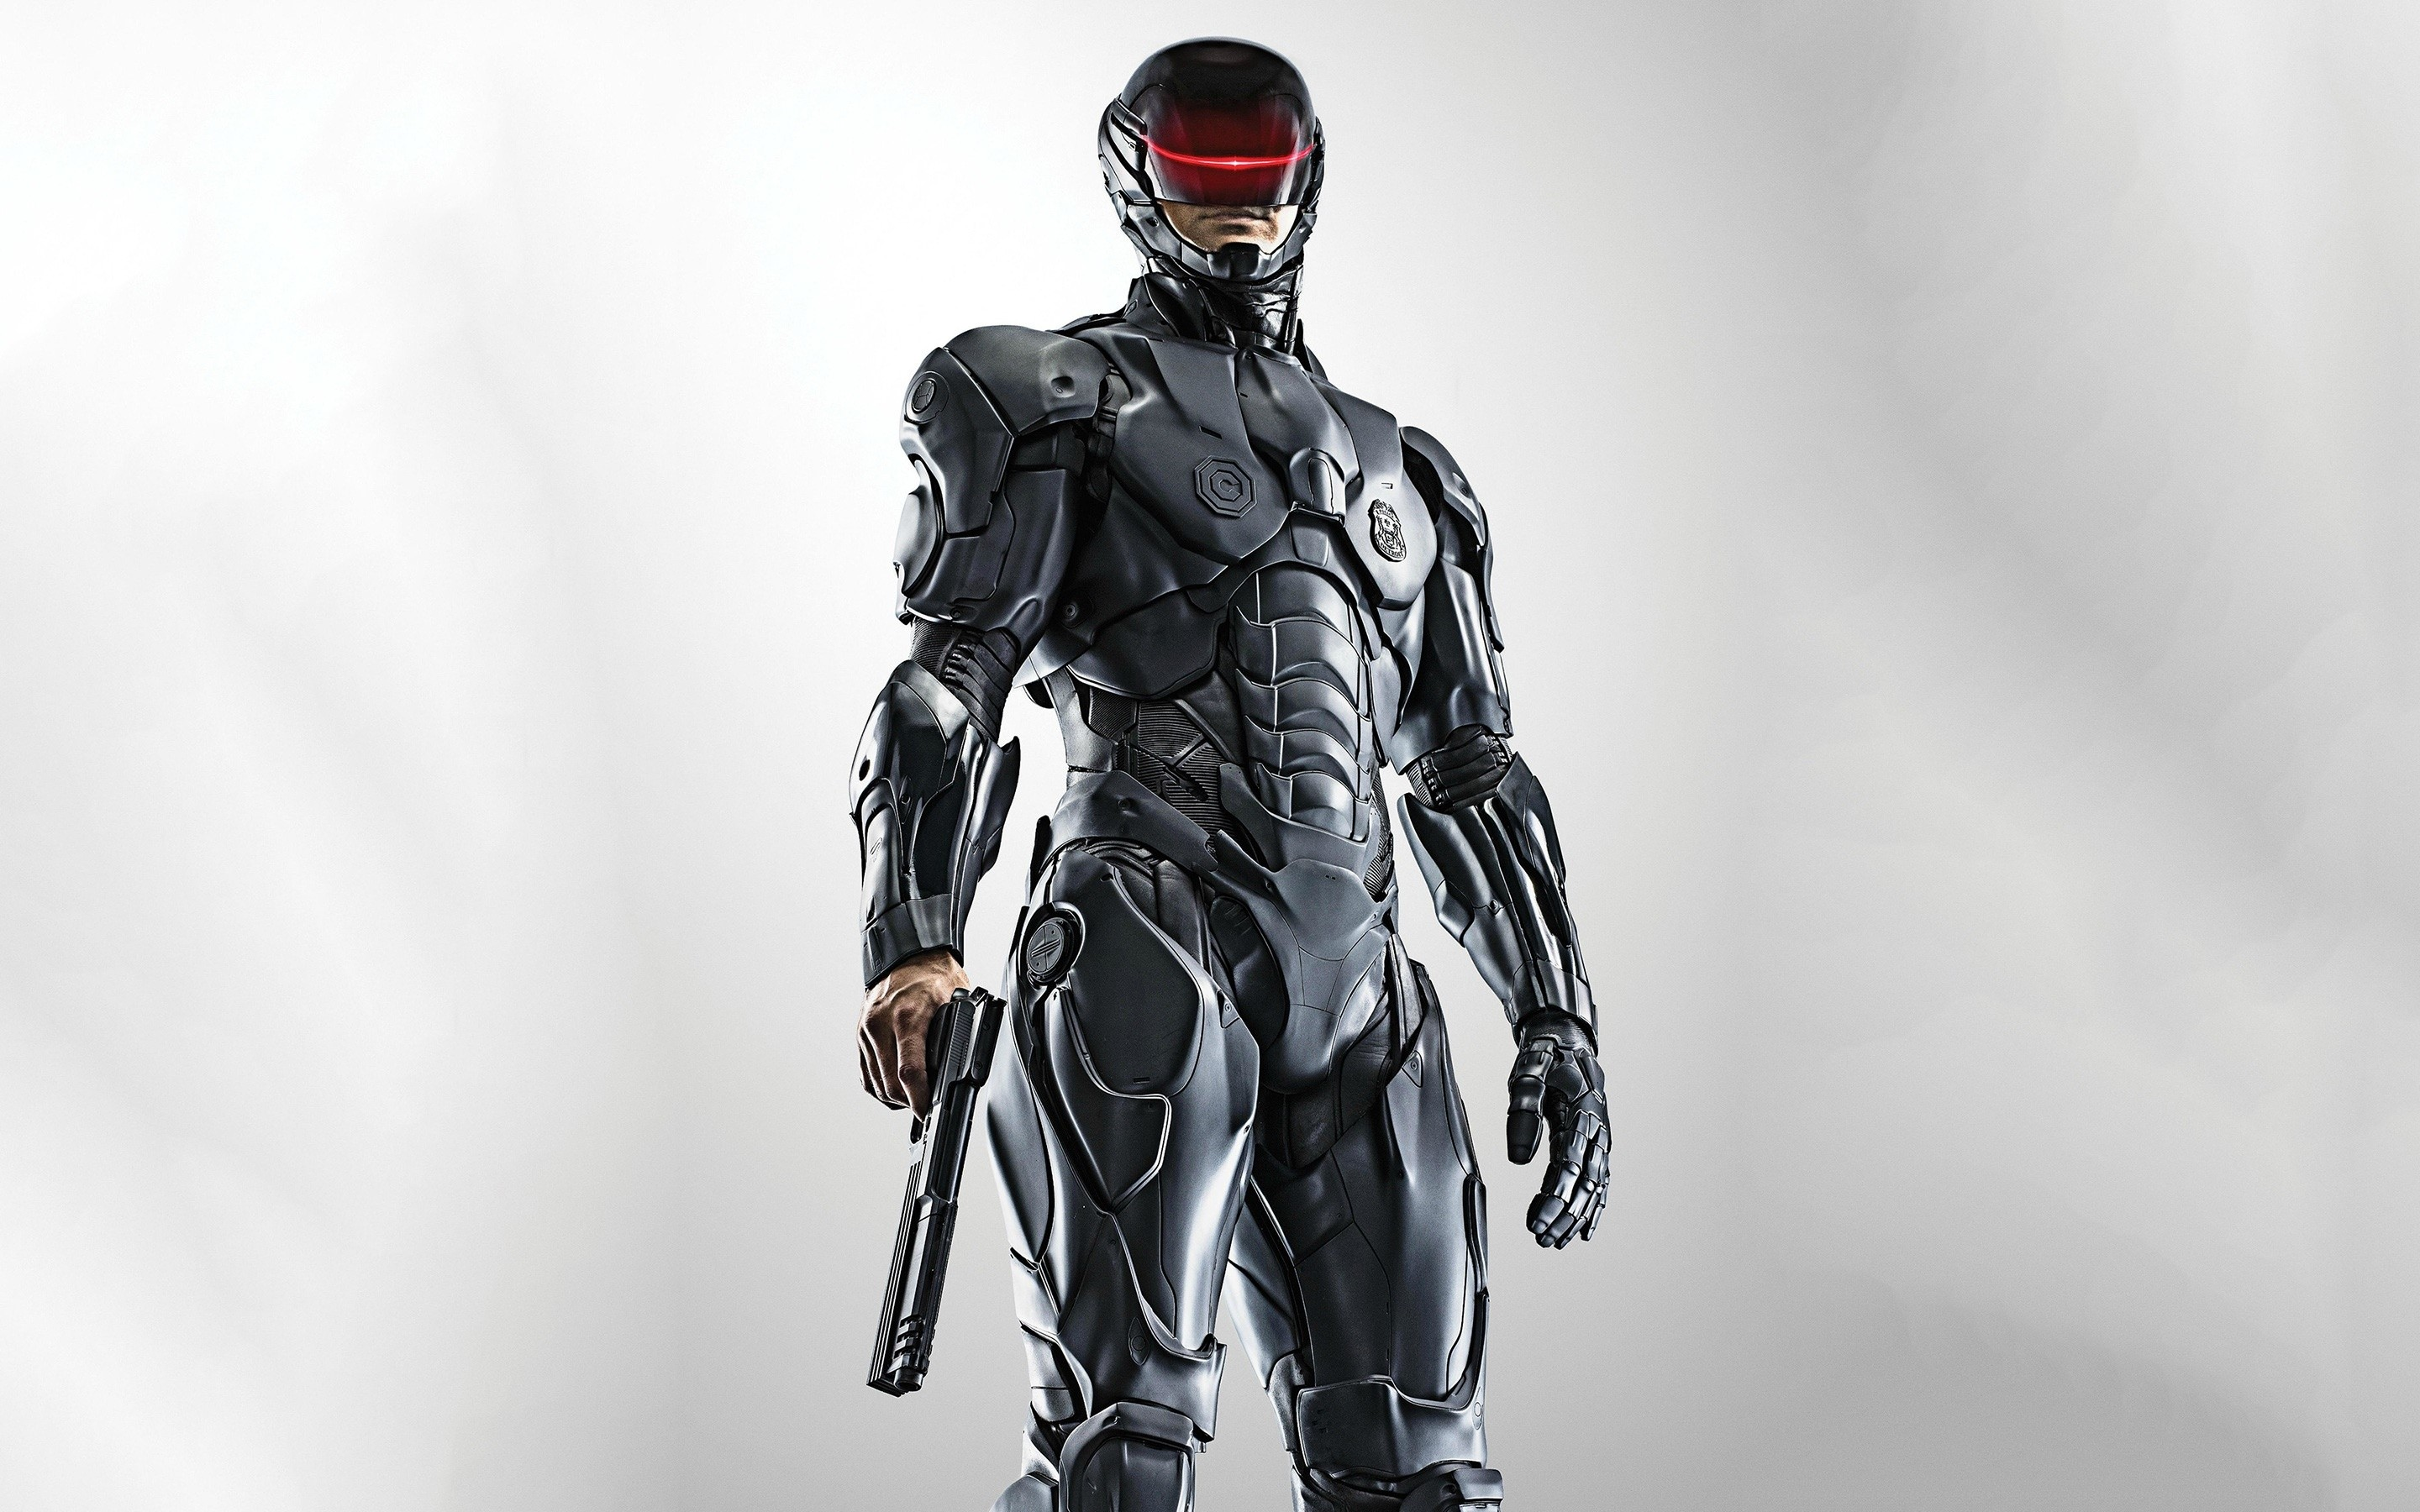 Wallpaper Armor of robocop